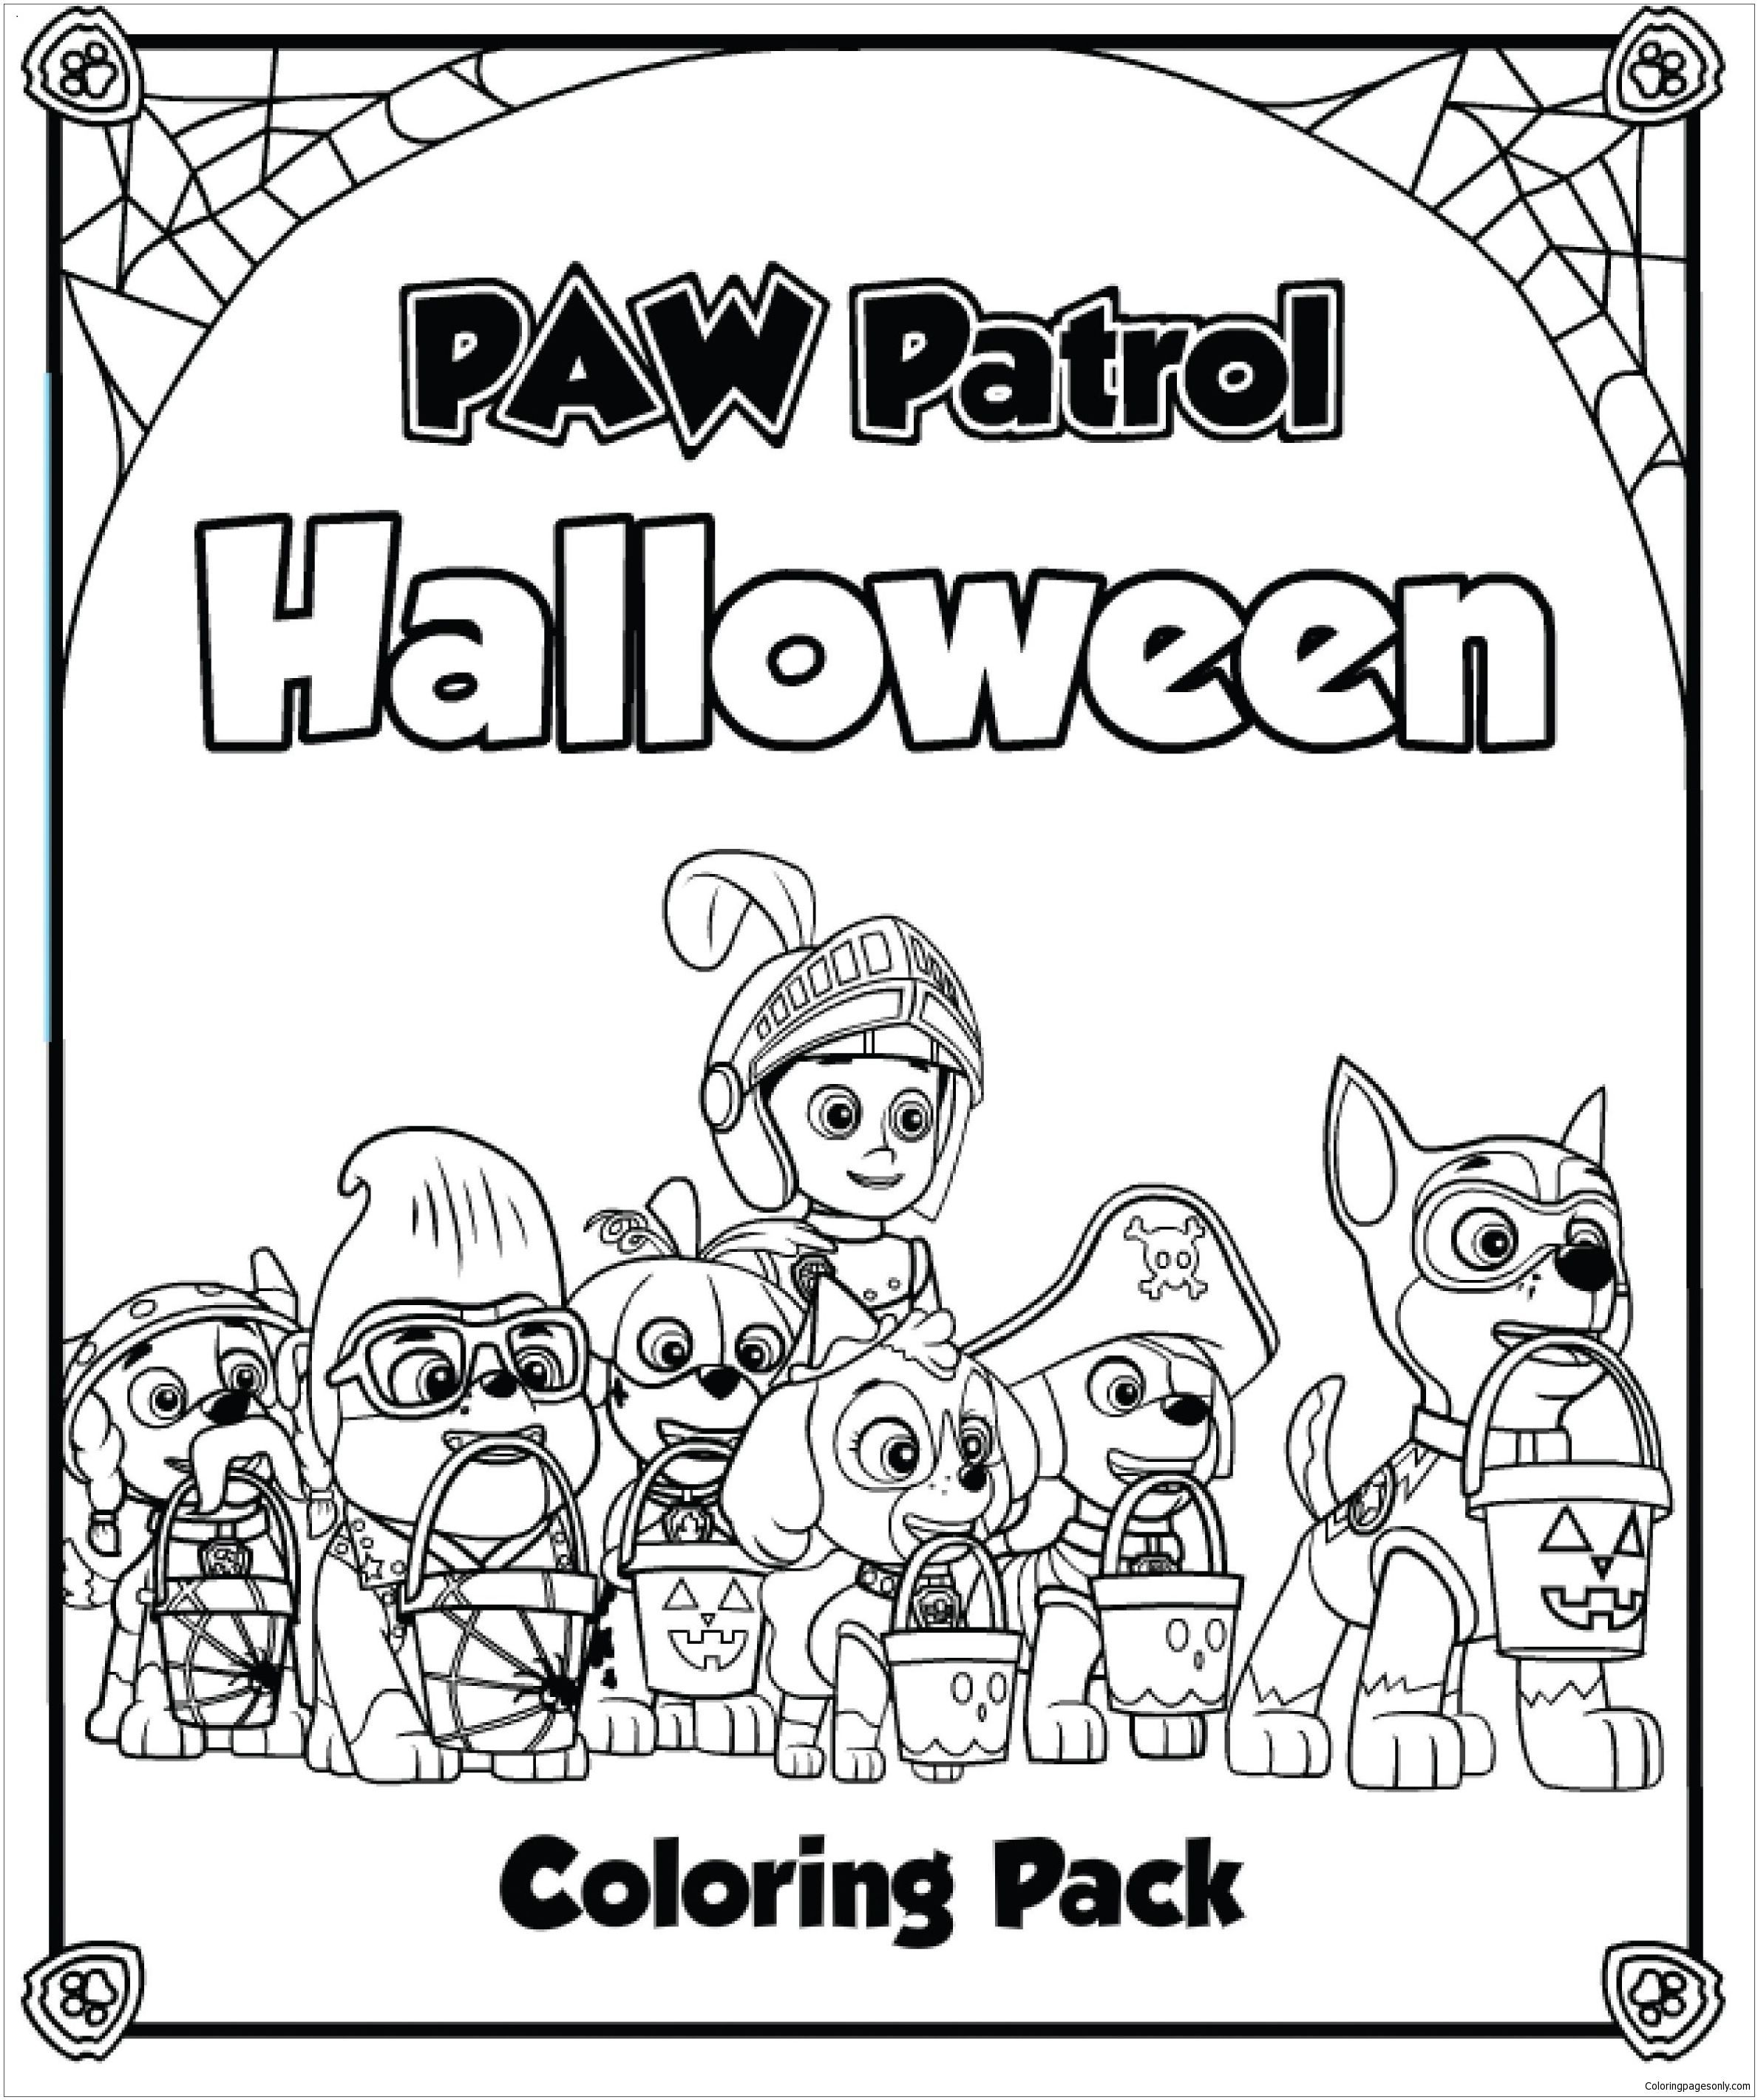 Paw Patrol Halloween 2 Coloring Page Paw Patrol Coloring Pages